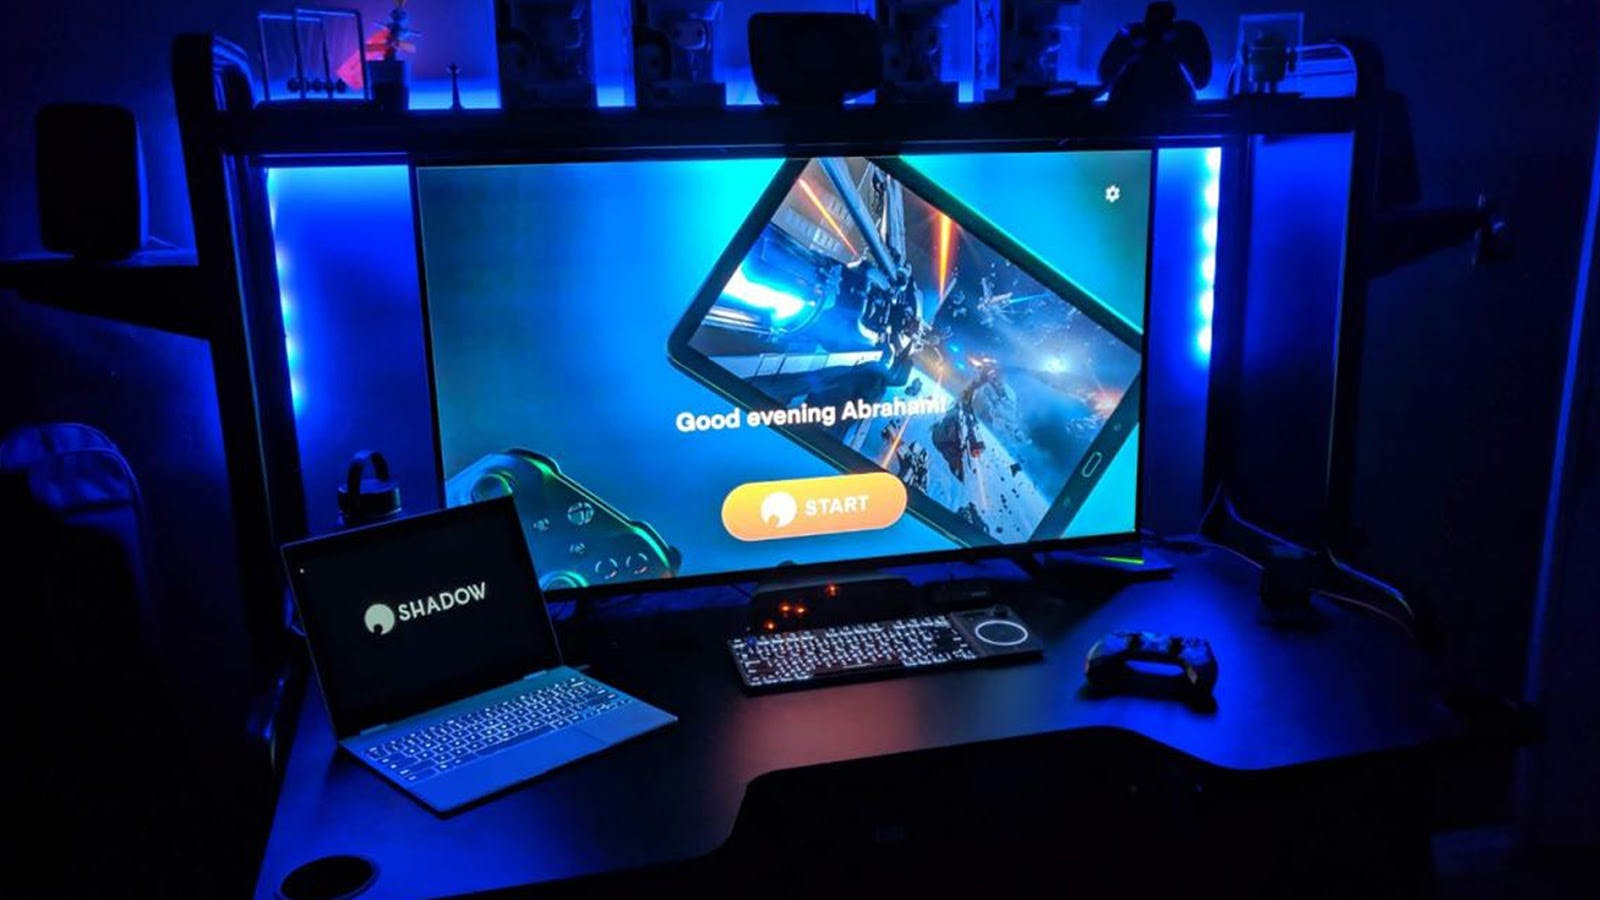 Shadow top 10 des setups gaming - ca stimule